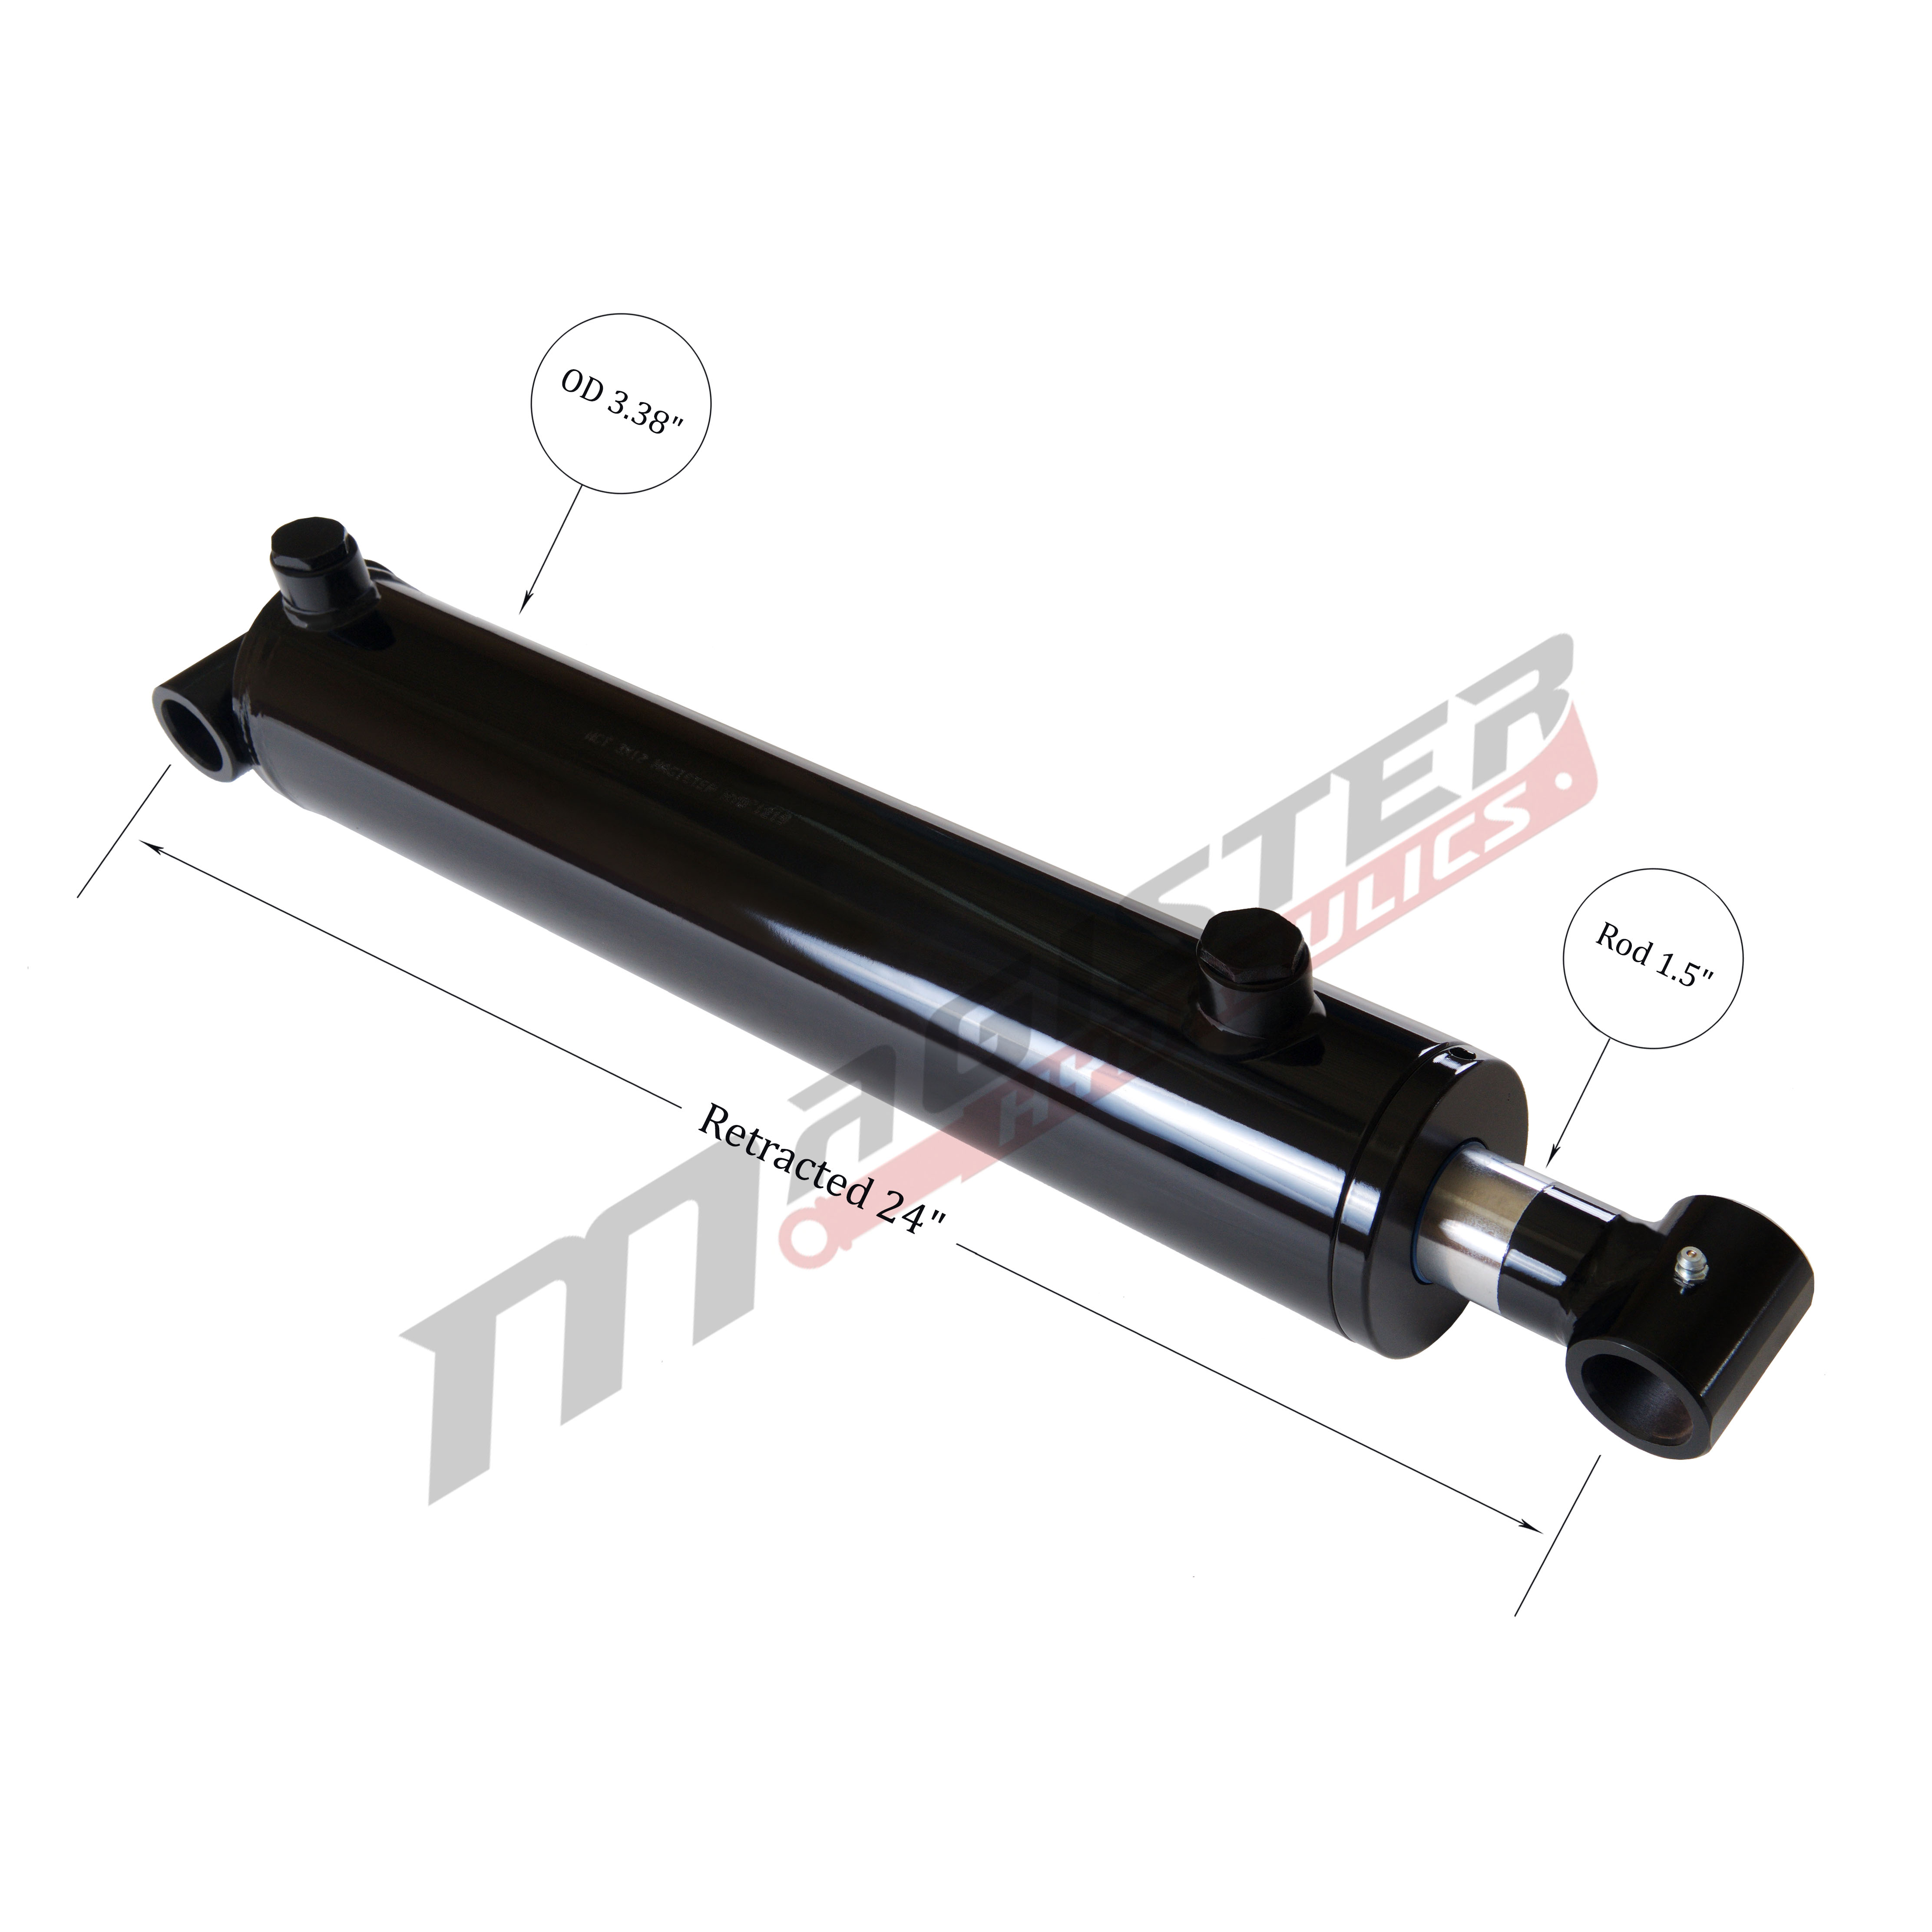 3 bore x 16 stroke hydraulic cylinder, welded cross tube double acting cylinder   Magister Hydraulics